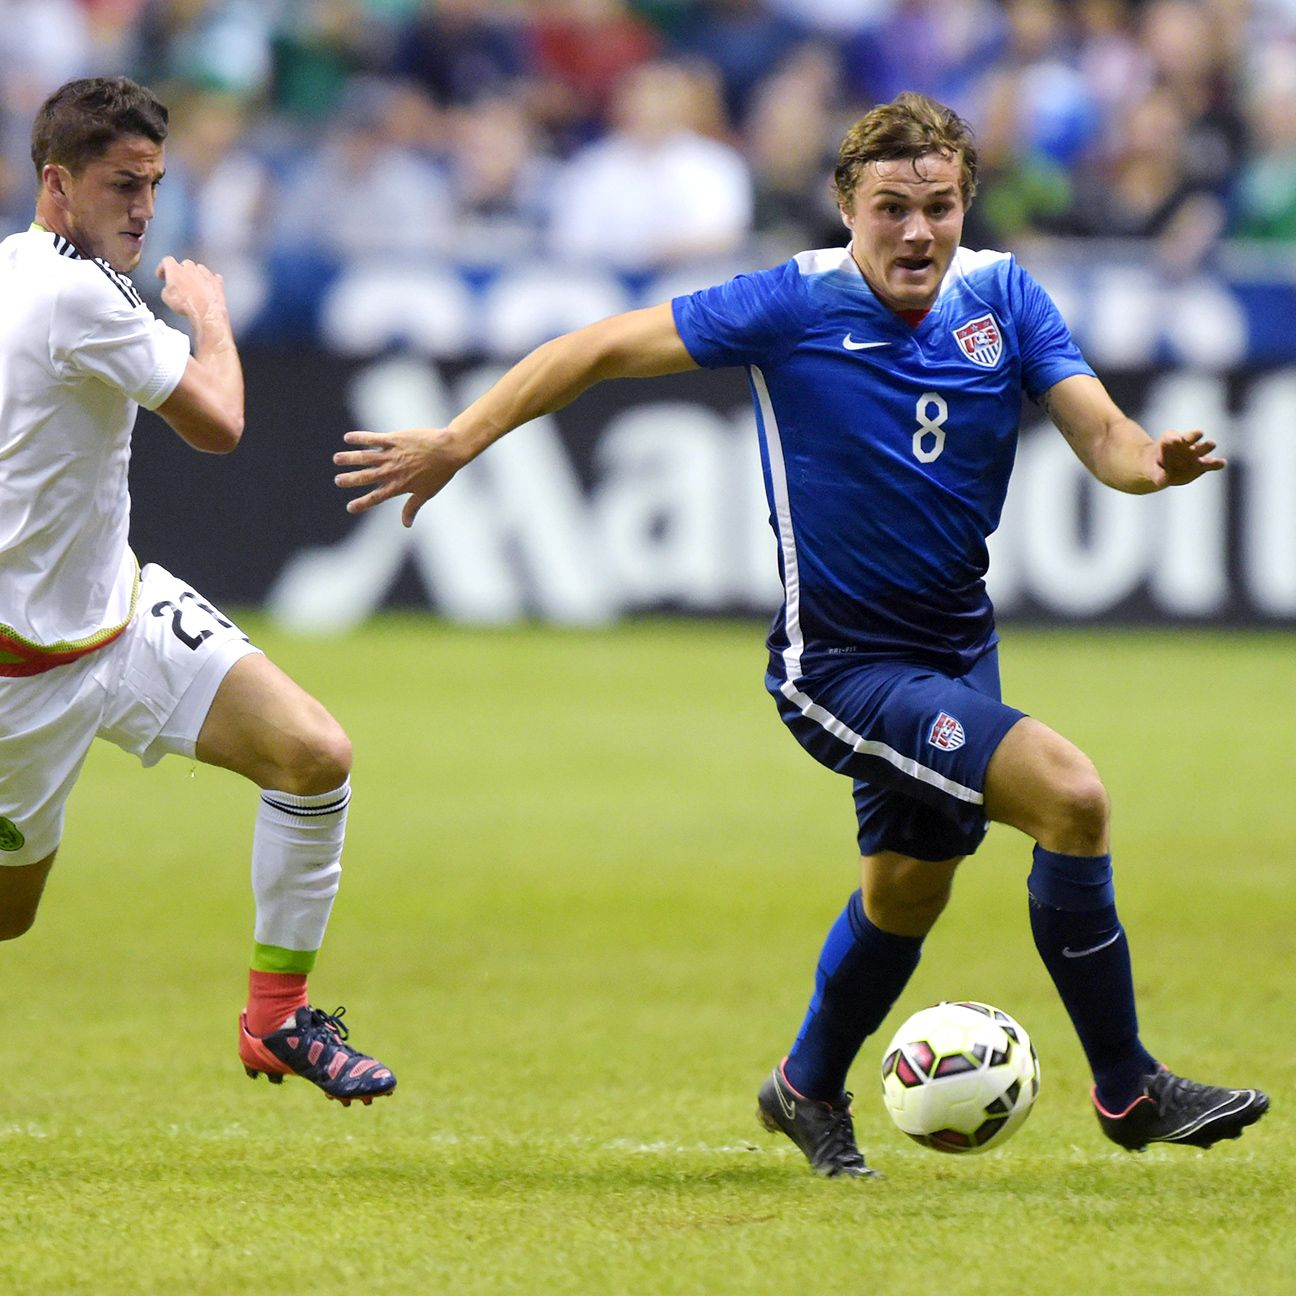 Will 20-year-old forward Jordan Morris be a part of the USMNT's Gold Cup roster?